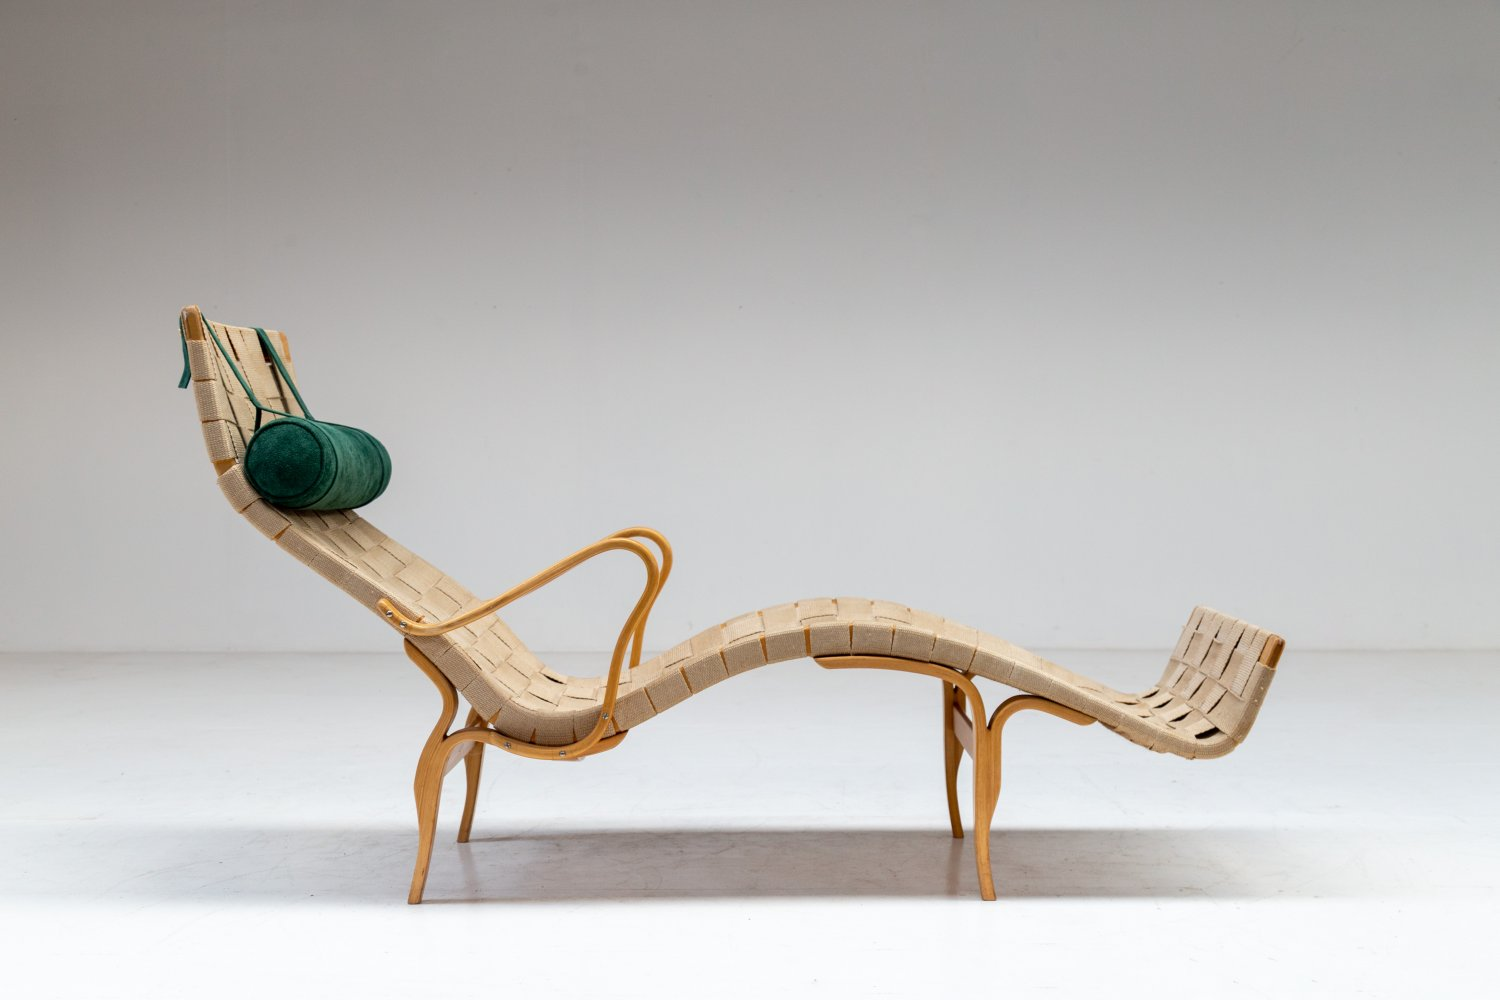 Bruno Mathsson 'Pernilla III' lounge chair.